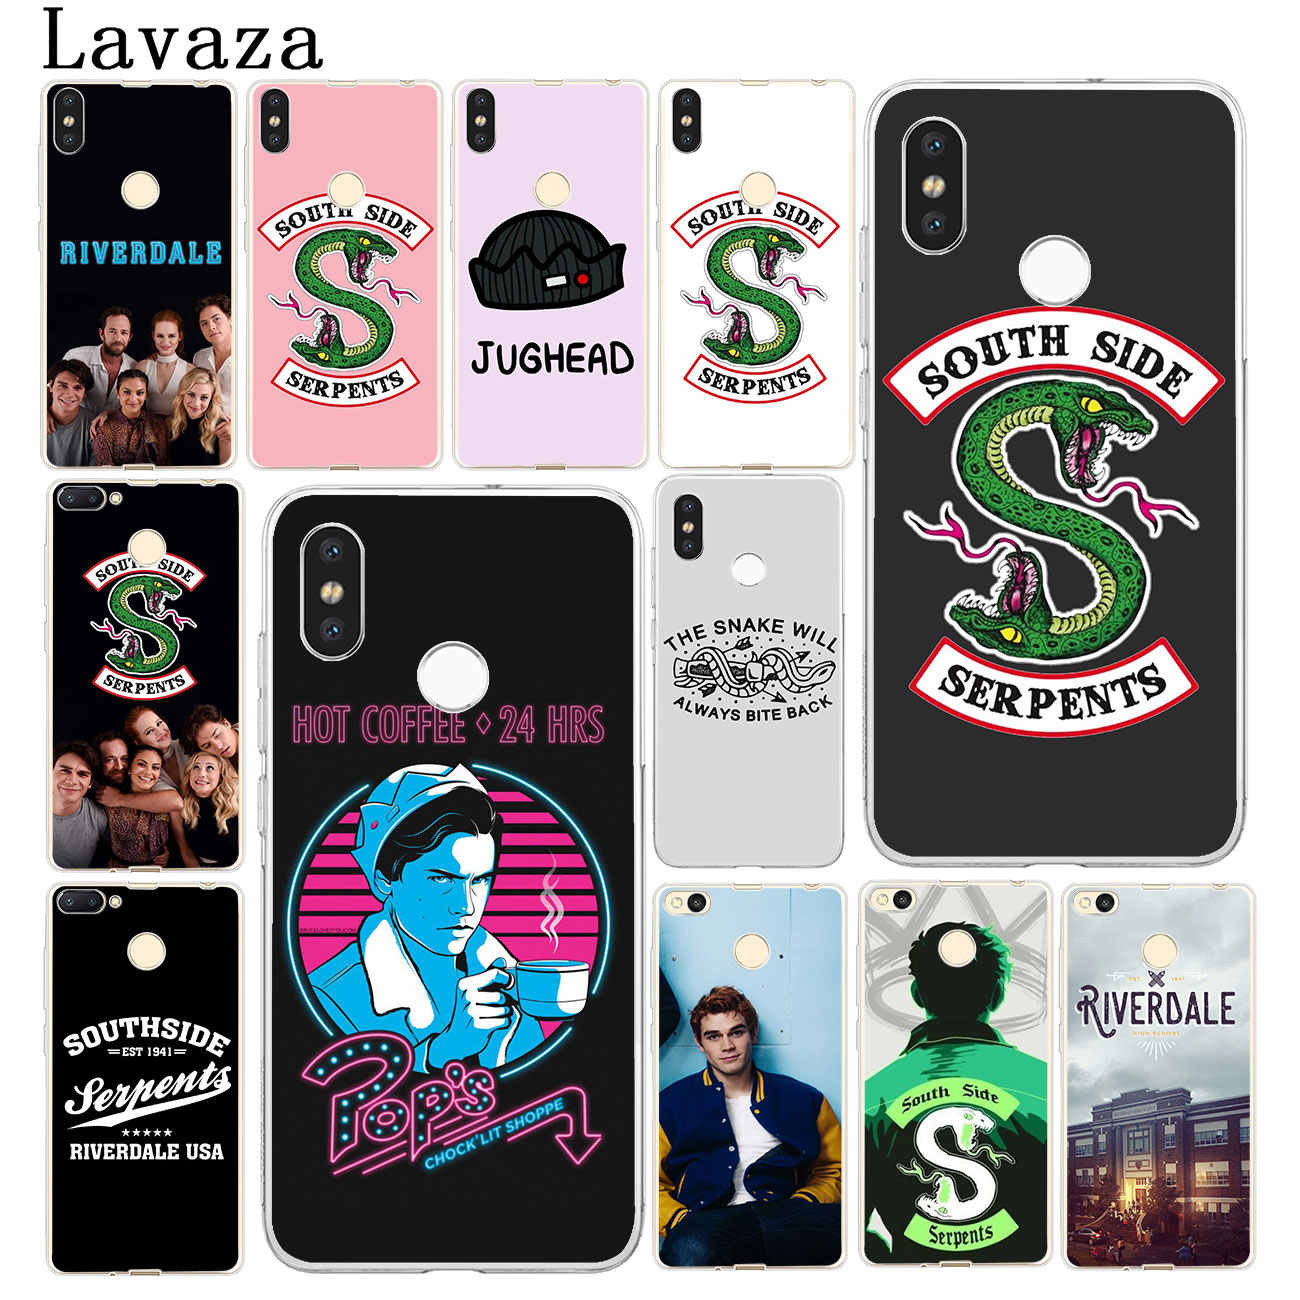 Lavaza Riverdale South Side Serpents Hard Phone Case for Xiaomi Redmi k20 7A 6A 4A S2 GO Note 7 5 6 Pro 4 4X Plus Cover